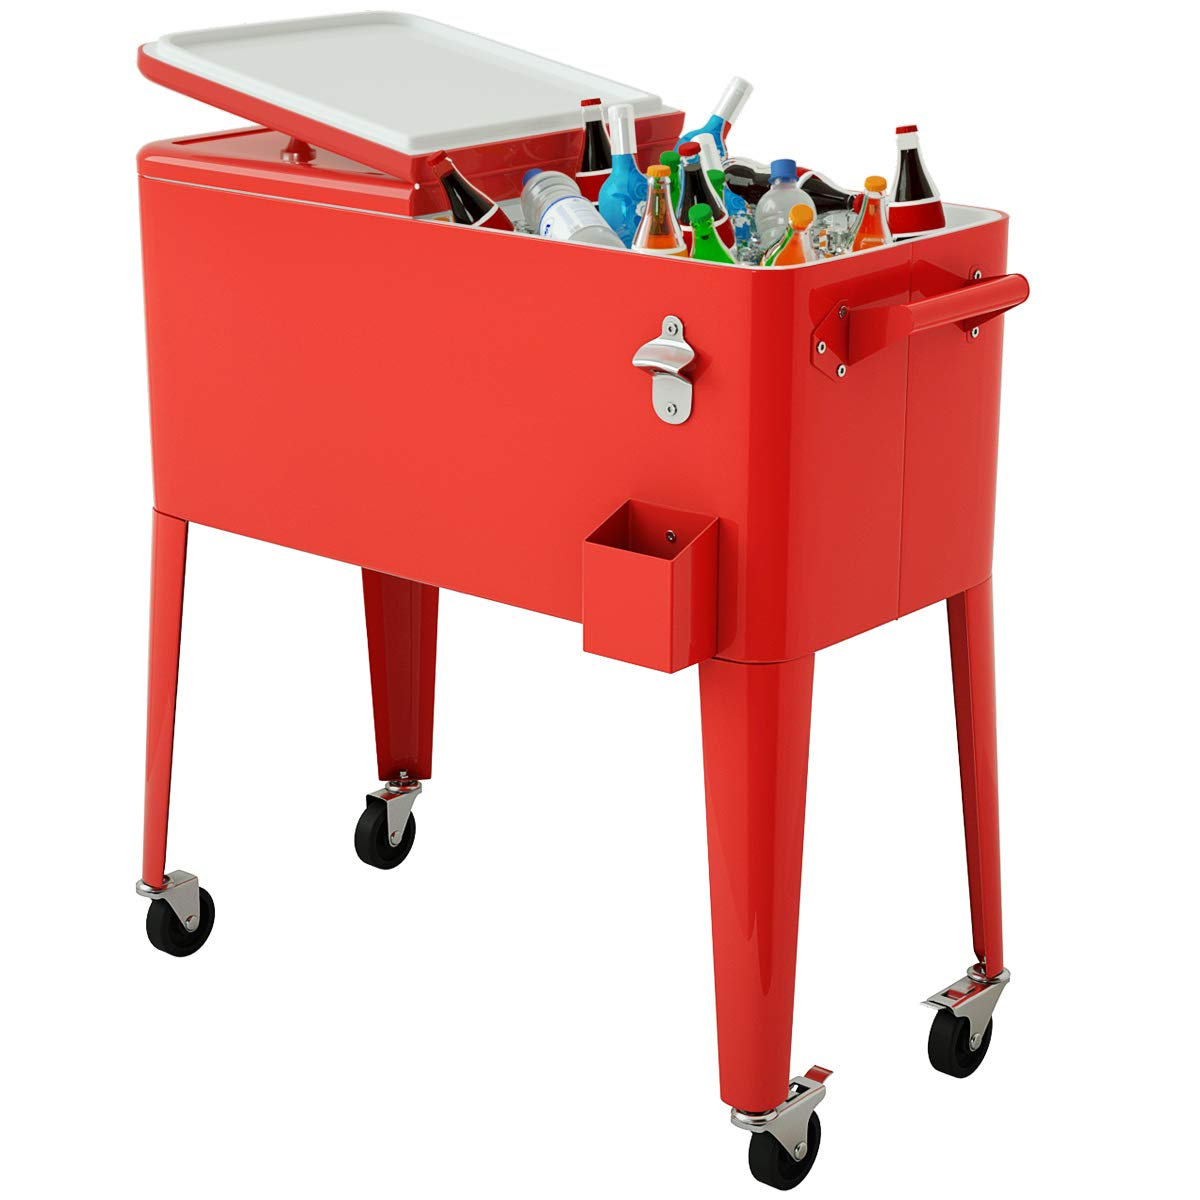 Giantex 80 Quart Cooler Cart Outdoor Cooler Cart on Wheels Patio Rolling Ice Chest for Beer Beverage Party Portable Cooler with Castors, Beverage Cooler Cart, Red Metal by Giantex